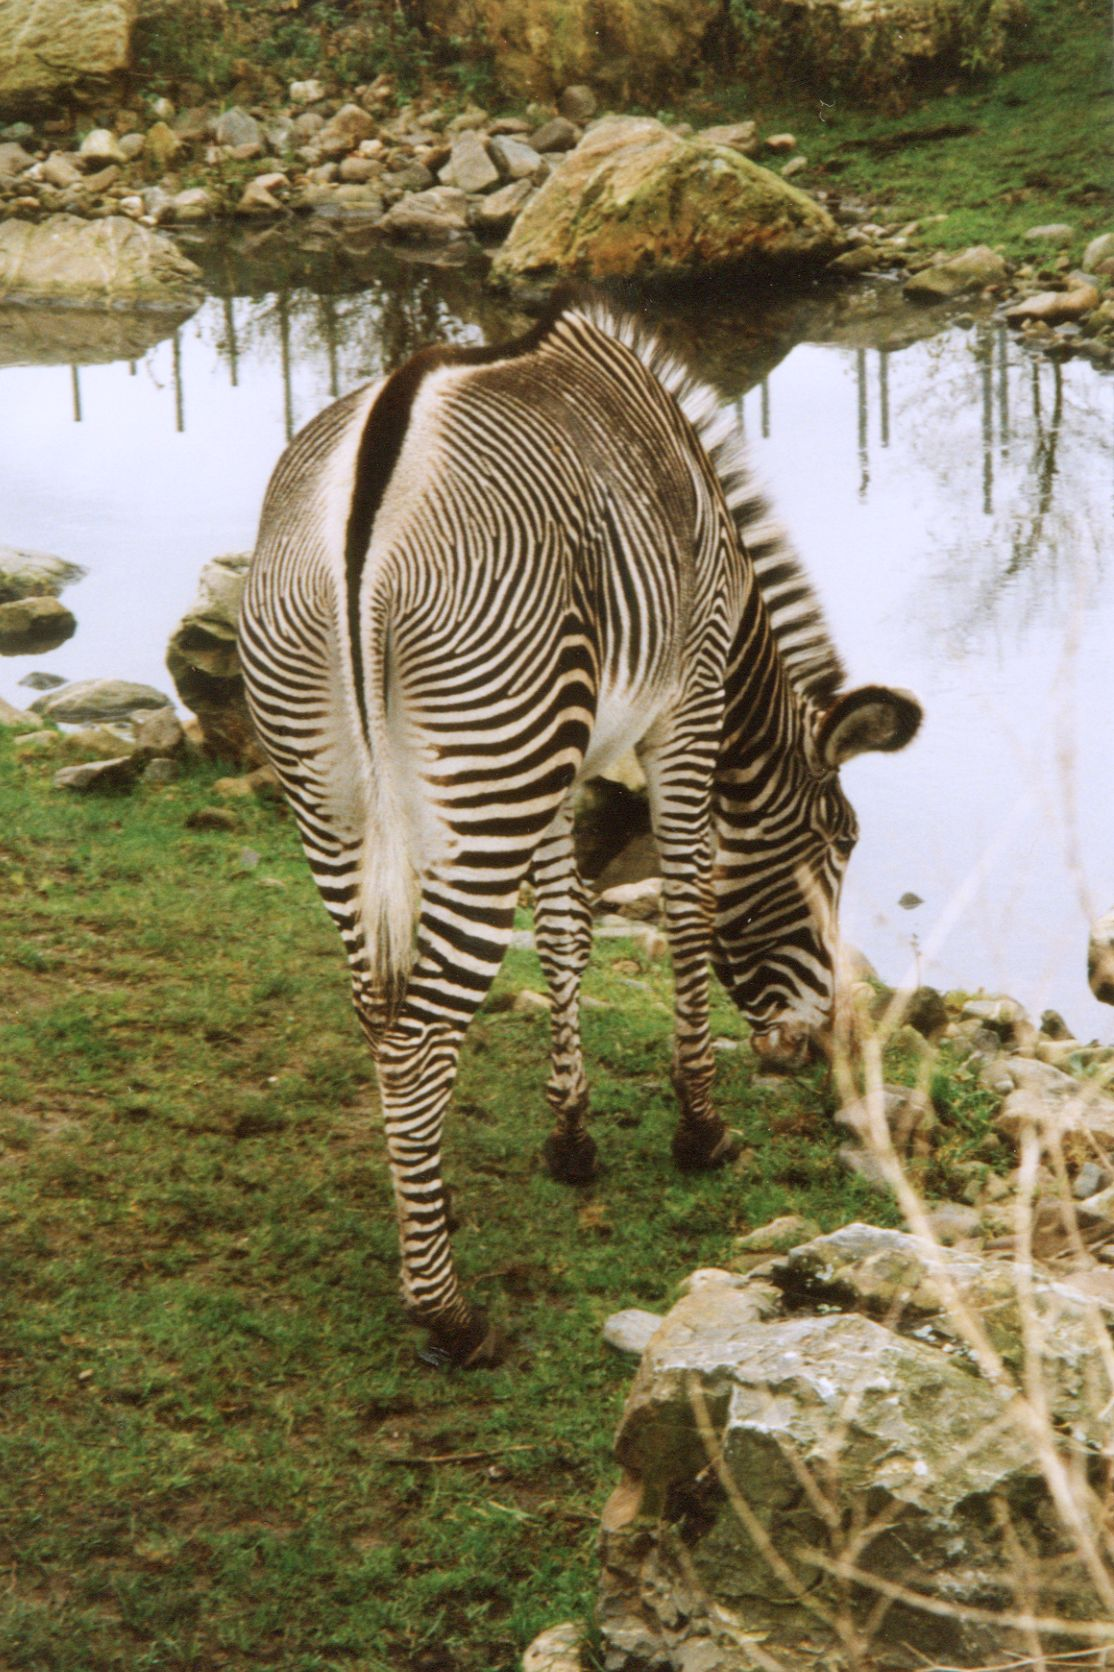 zebra africa stripes striped black and white head nose backside bottom drink drinking water waterhole tail